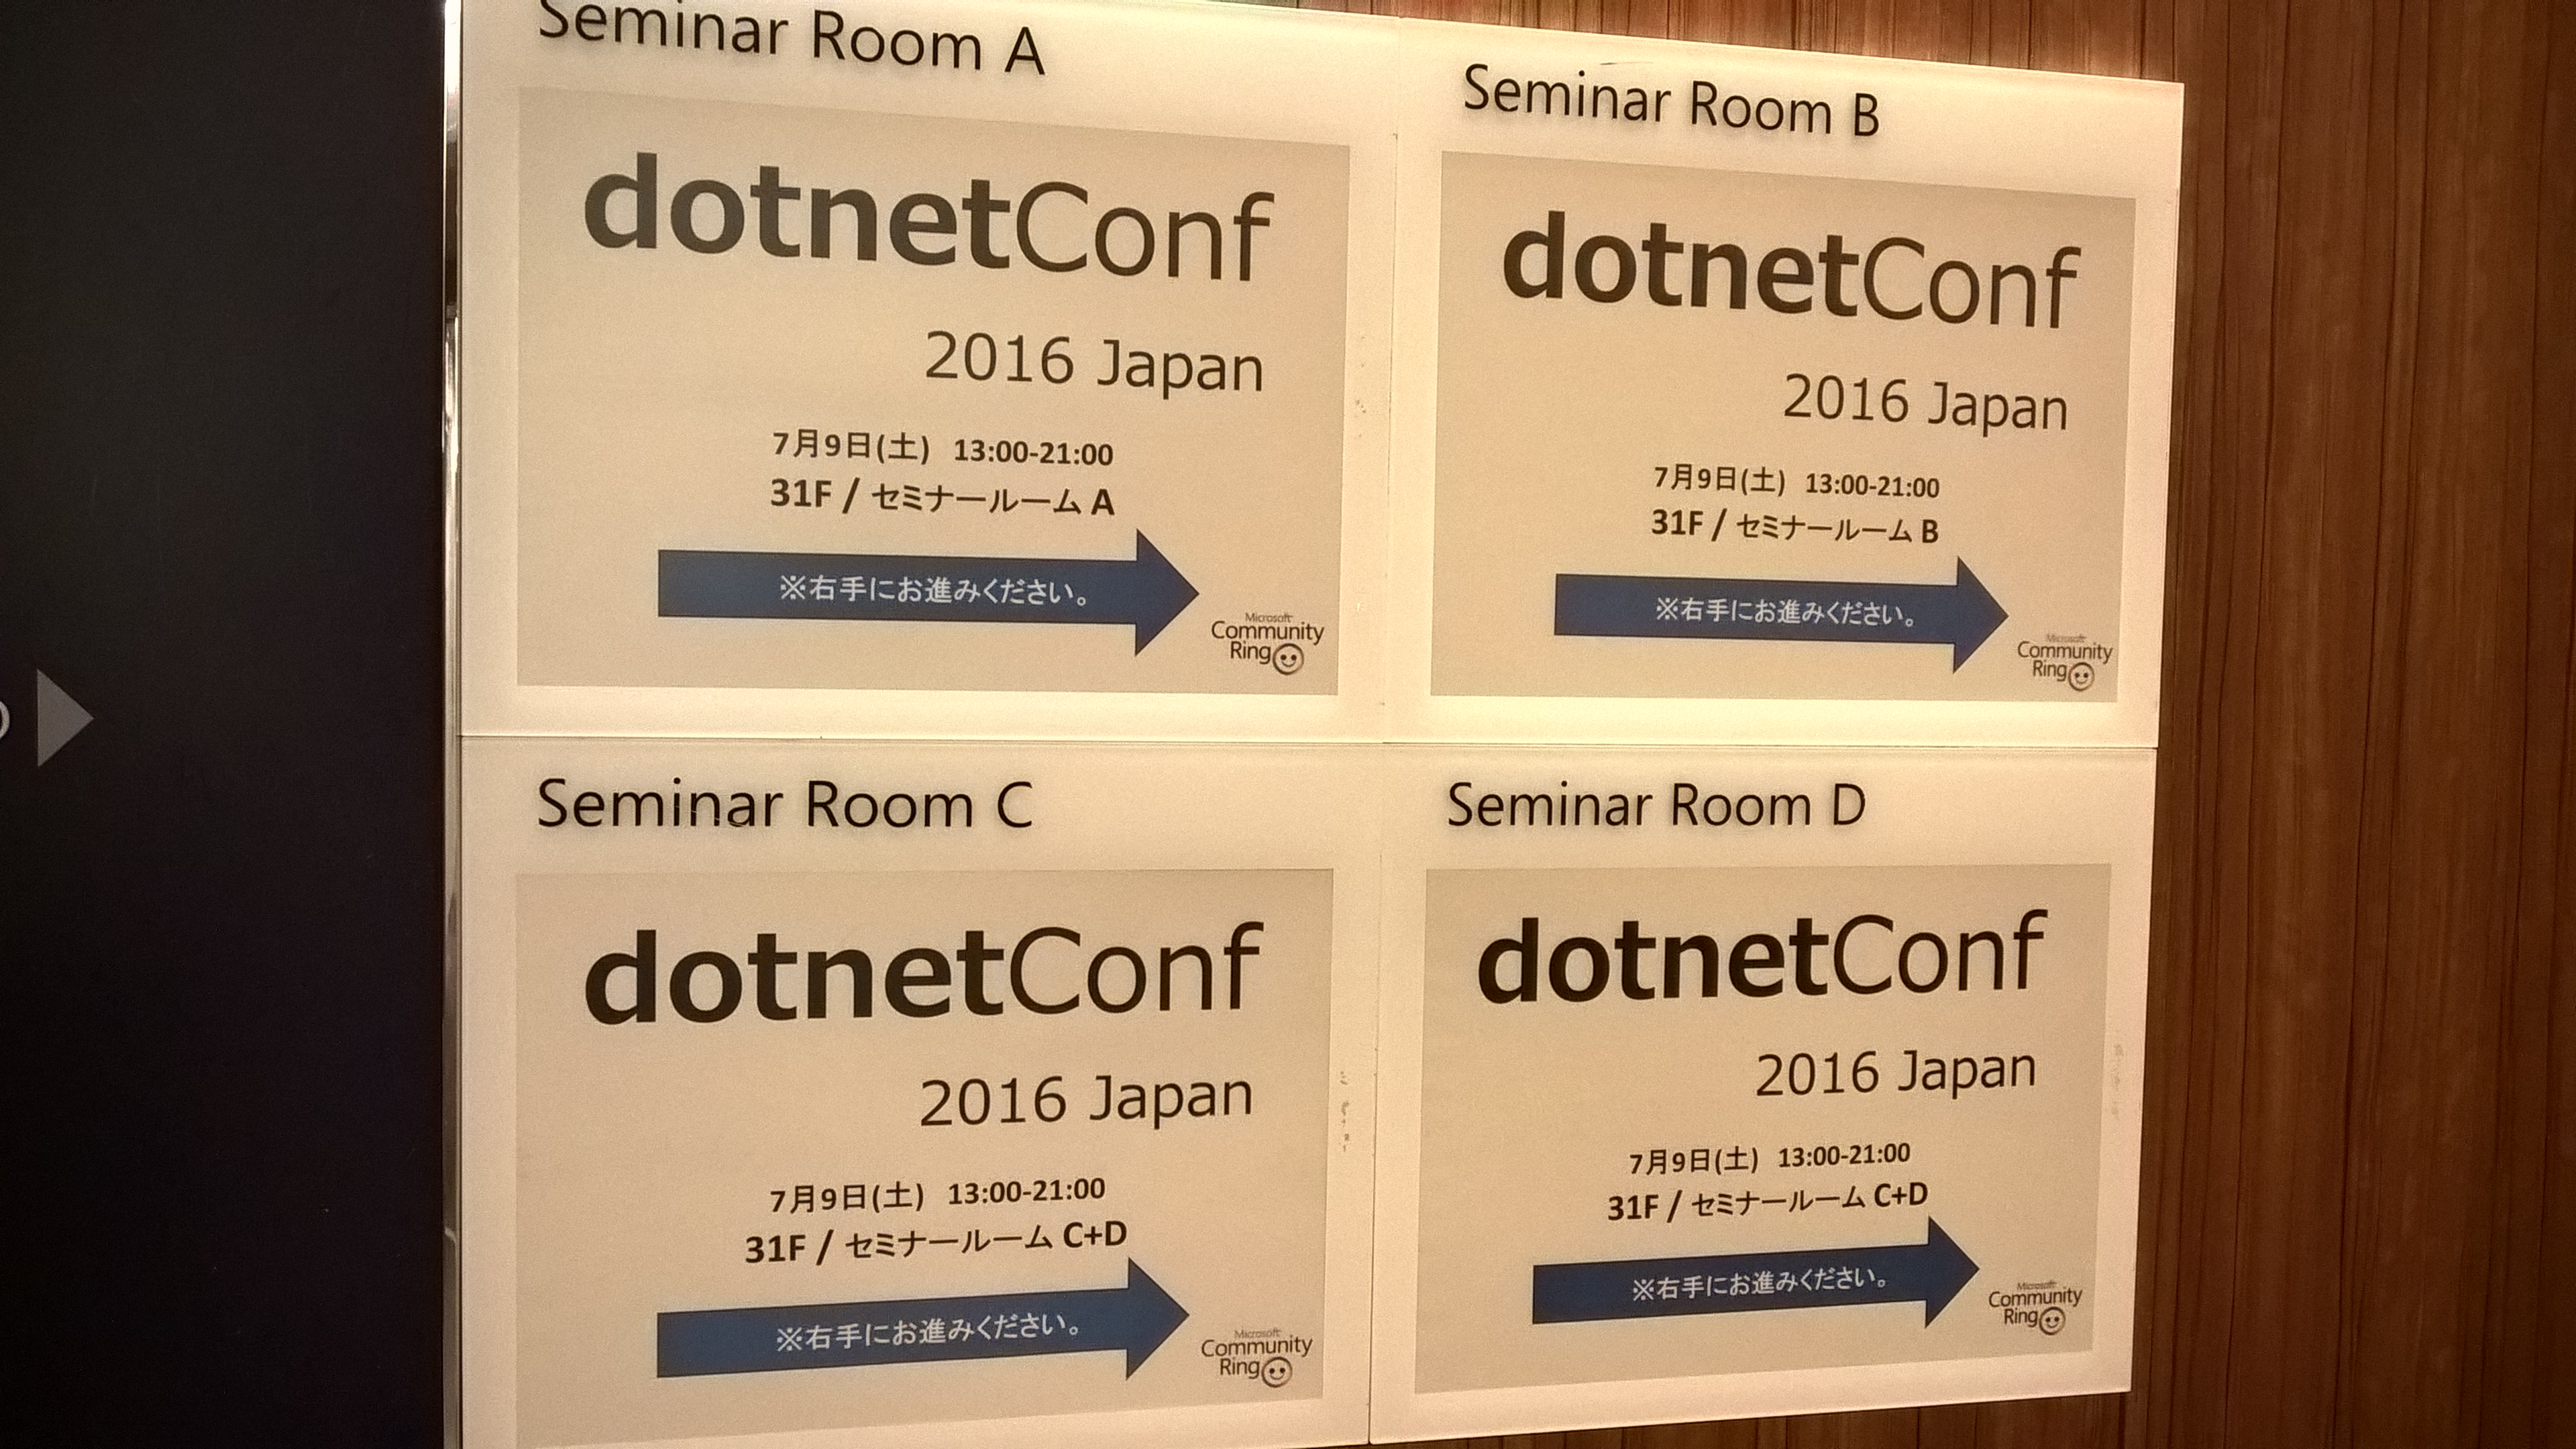 It's a wrap! dotnetConf 2016 Japan